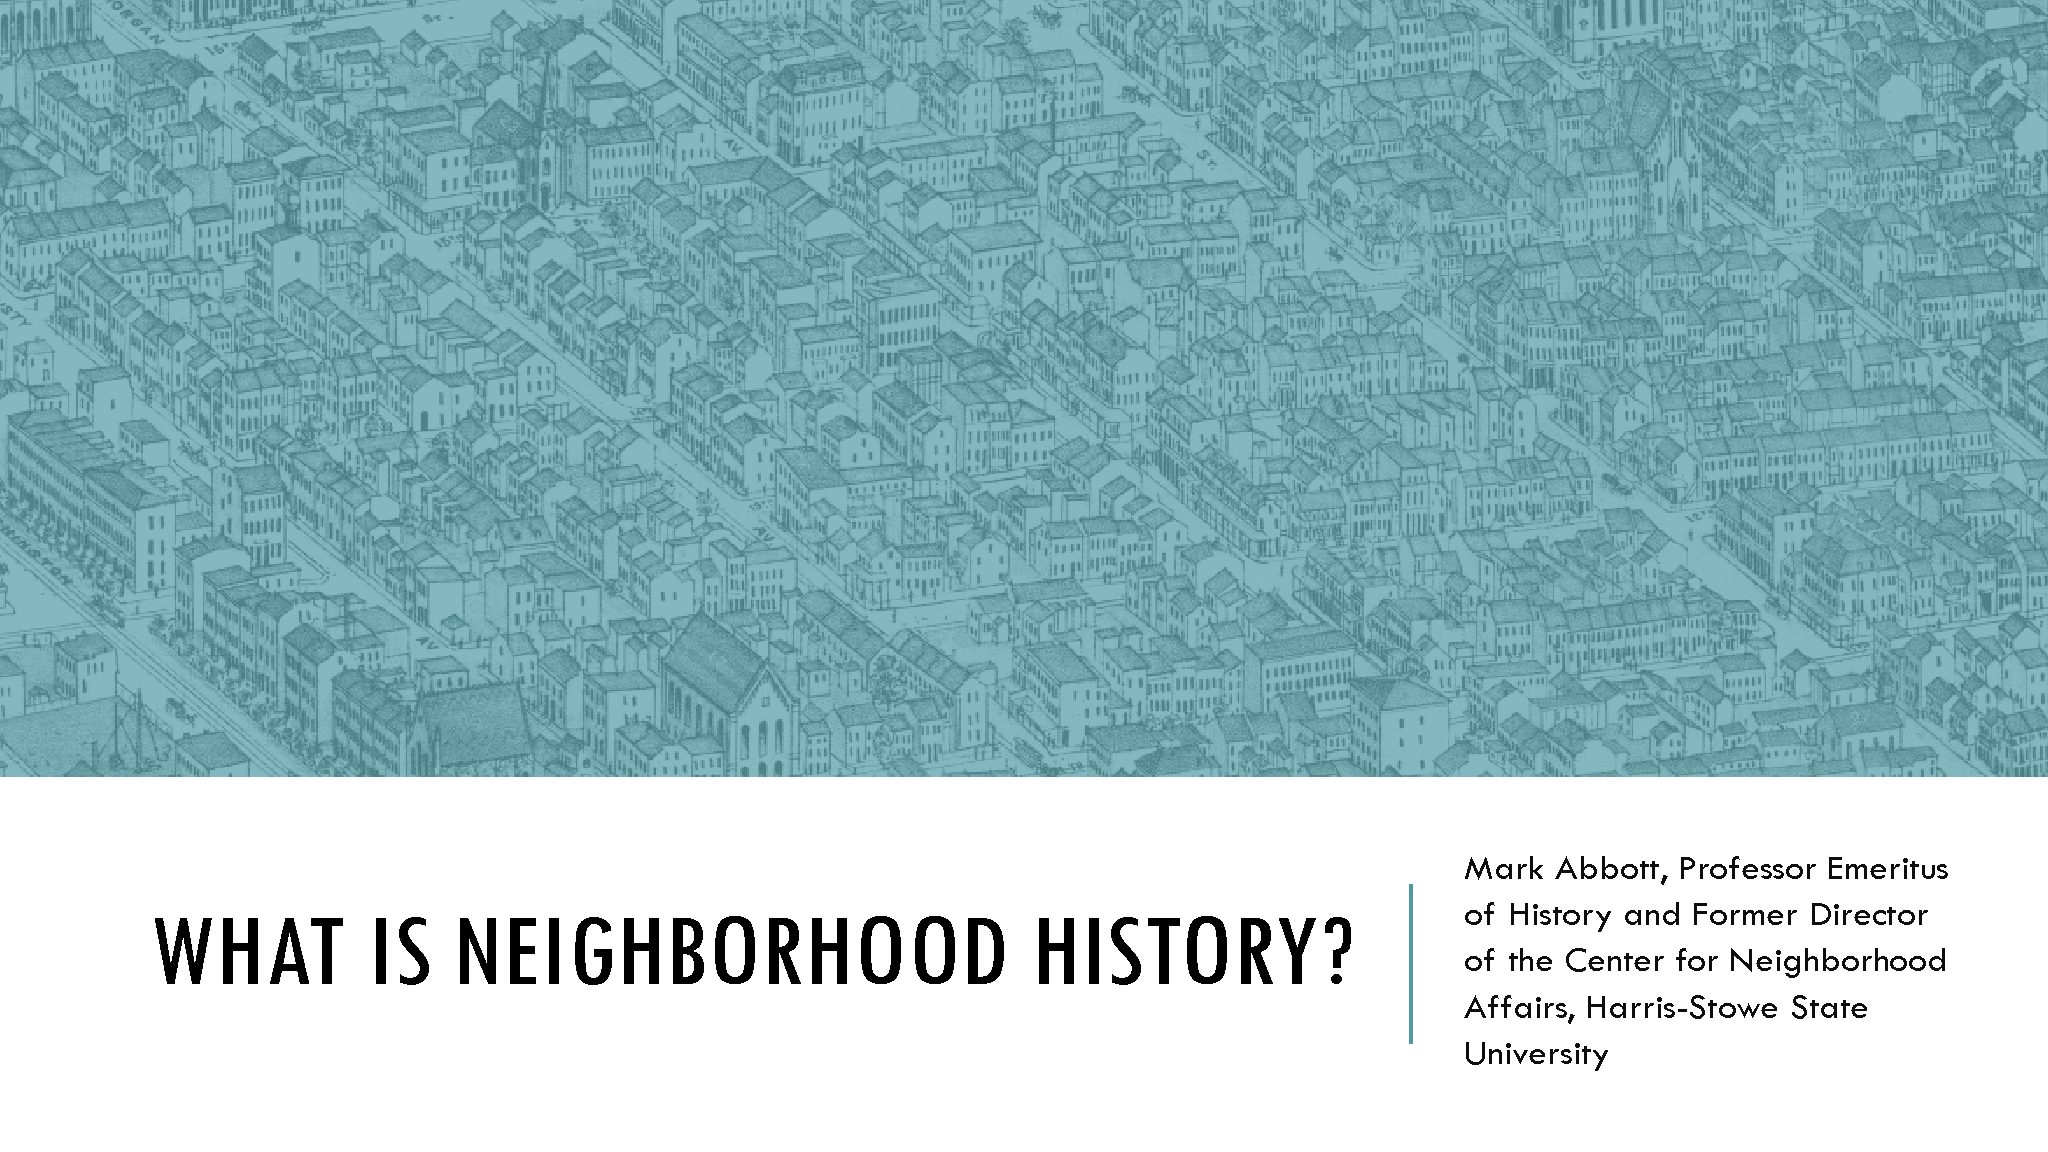 Workshop 1: Neighborhood History: What does it entail? Mark Abbott